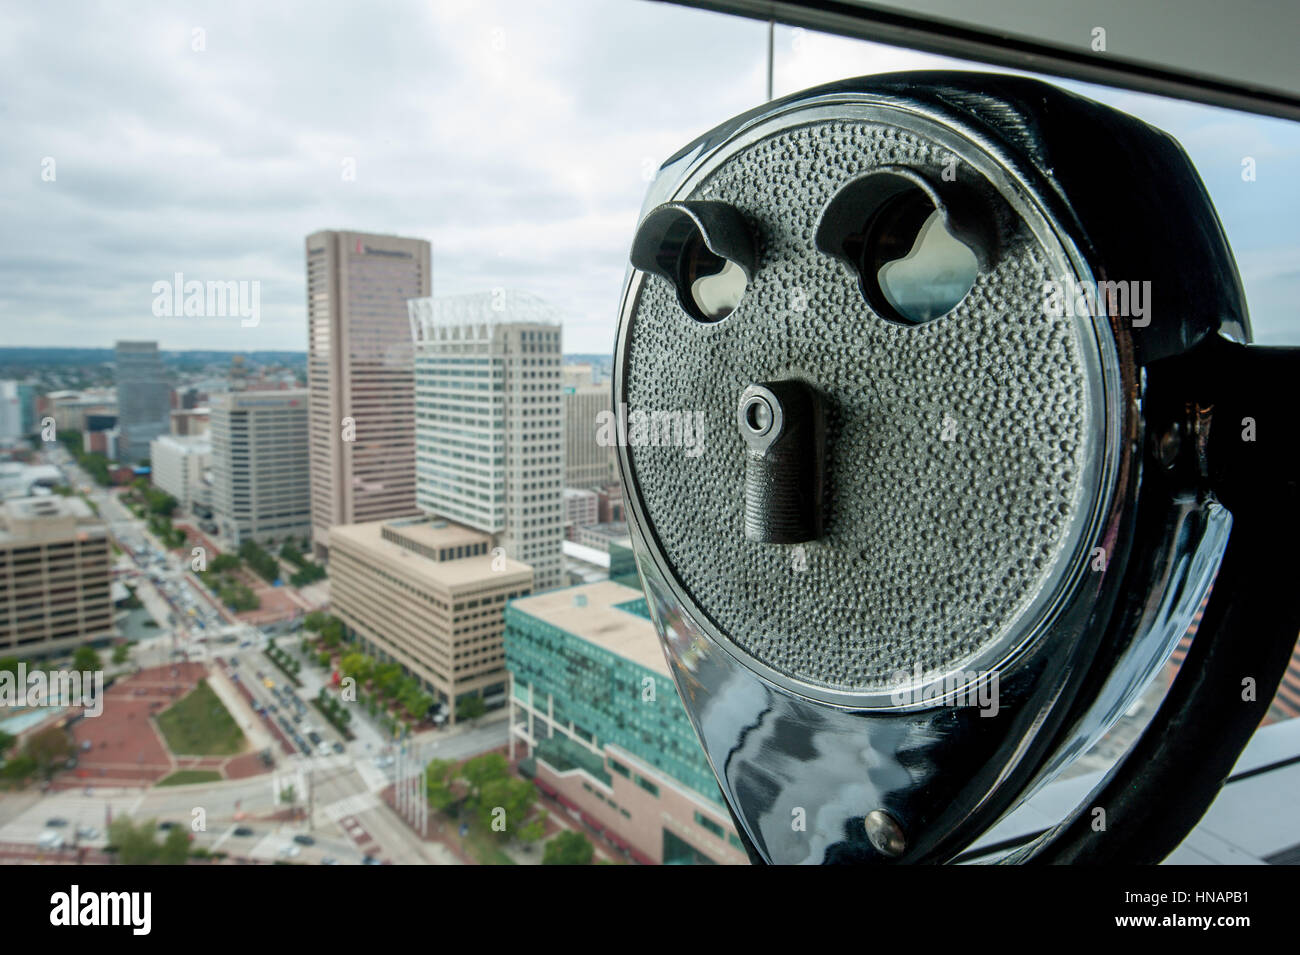 A viewing machine on the 27th floor of Baltimore's World Trade Center building. - Stock Image